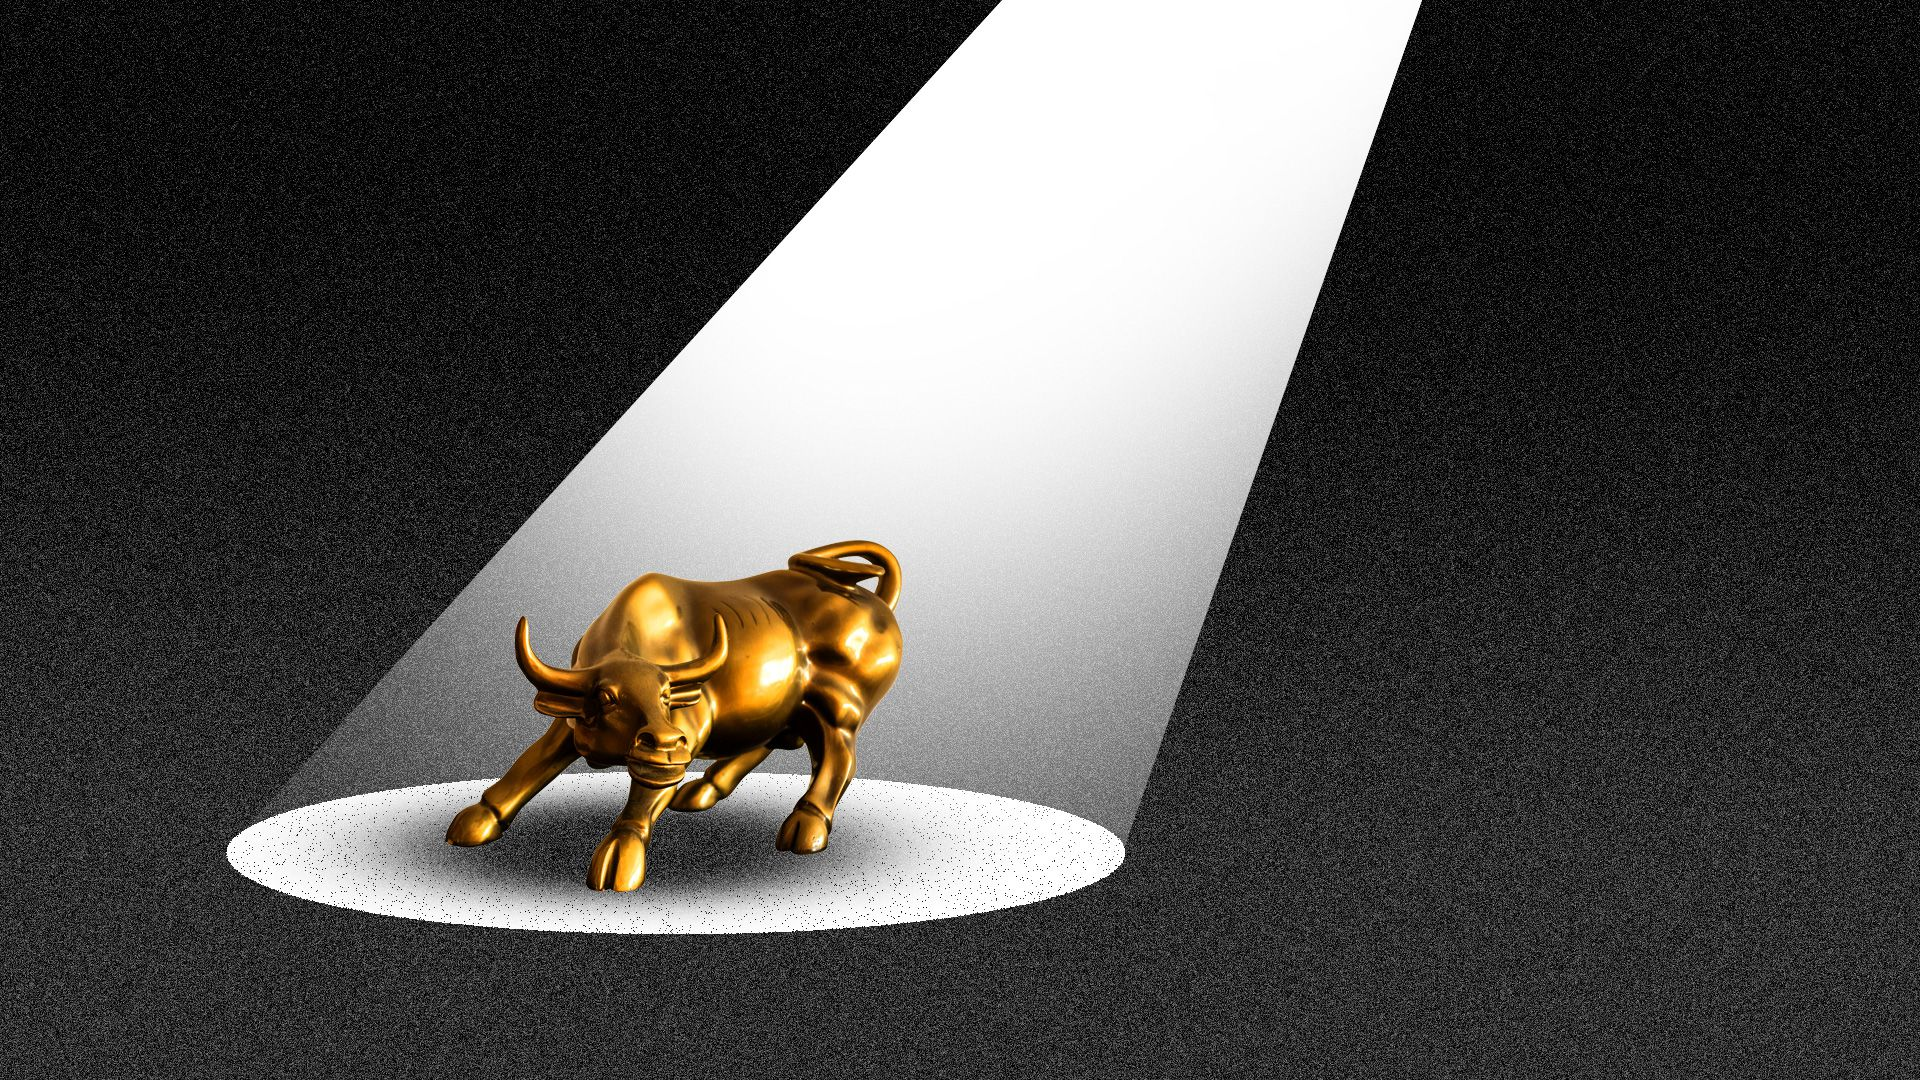 The Wall Street bull being illuminated by a spotlight